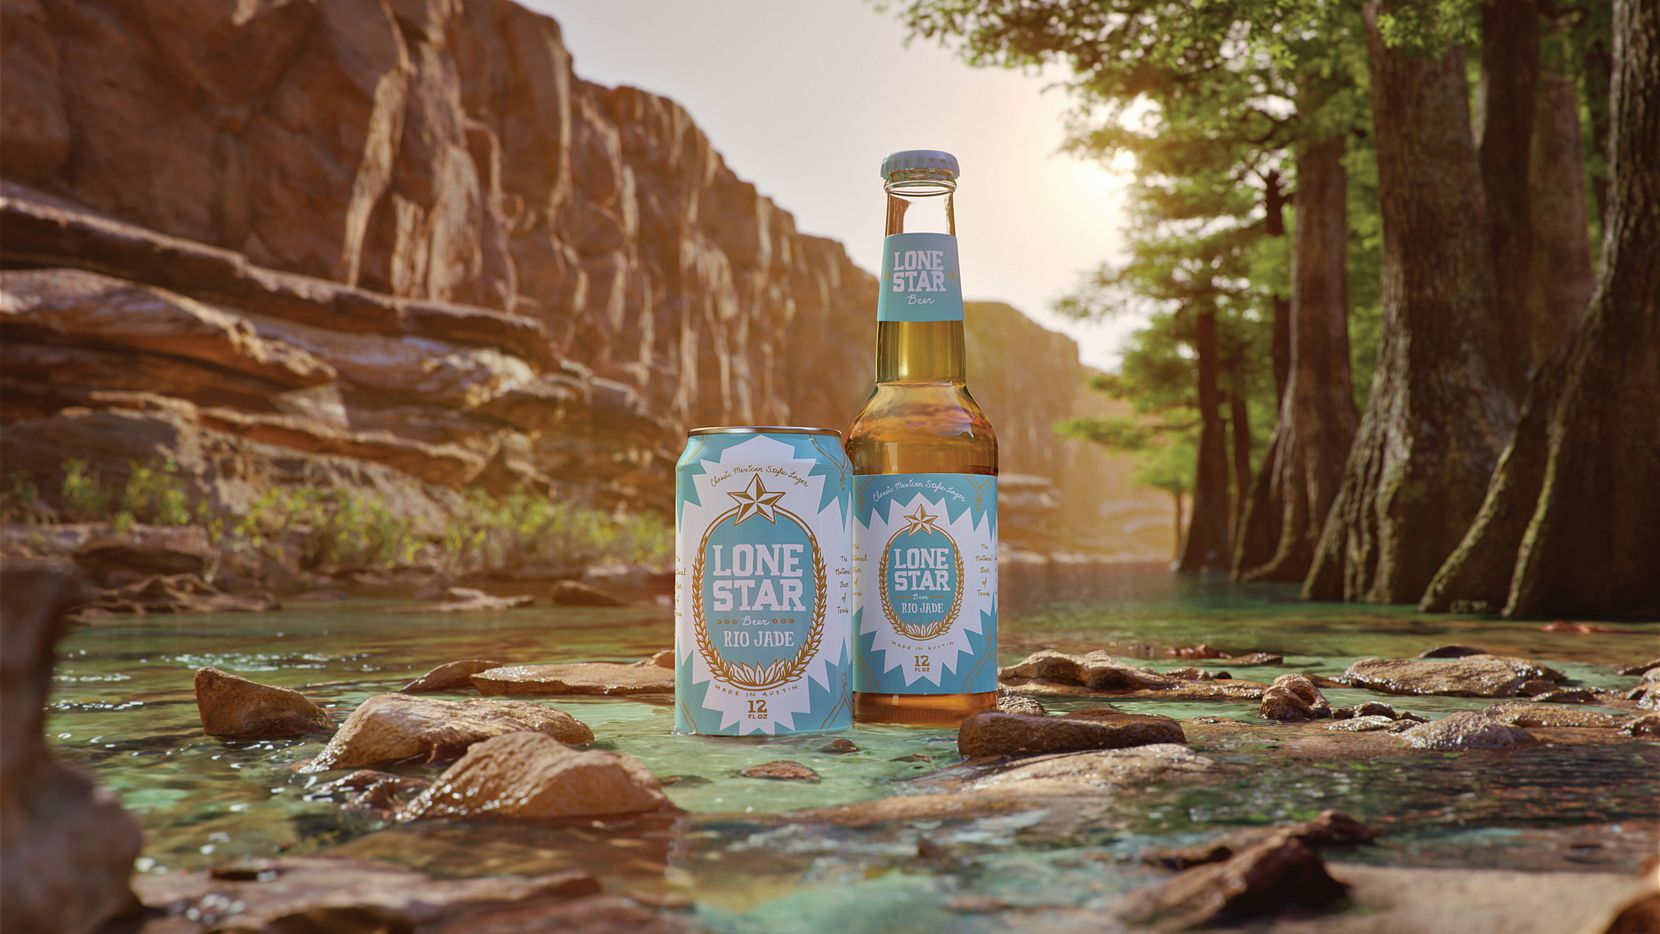 Rio Jade is a new Mexican-style lager from Lone Star Beer.